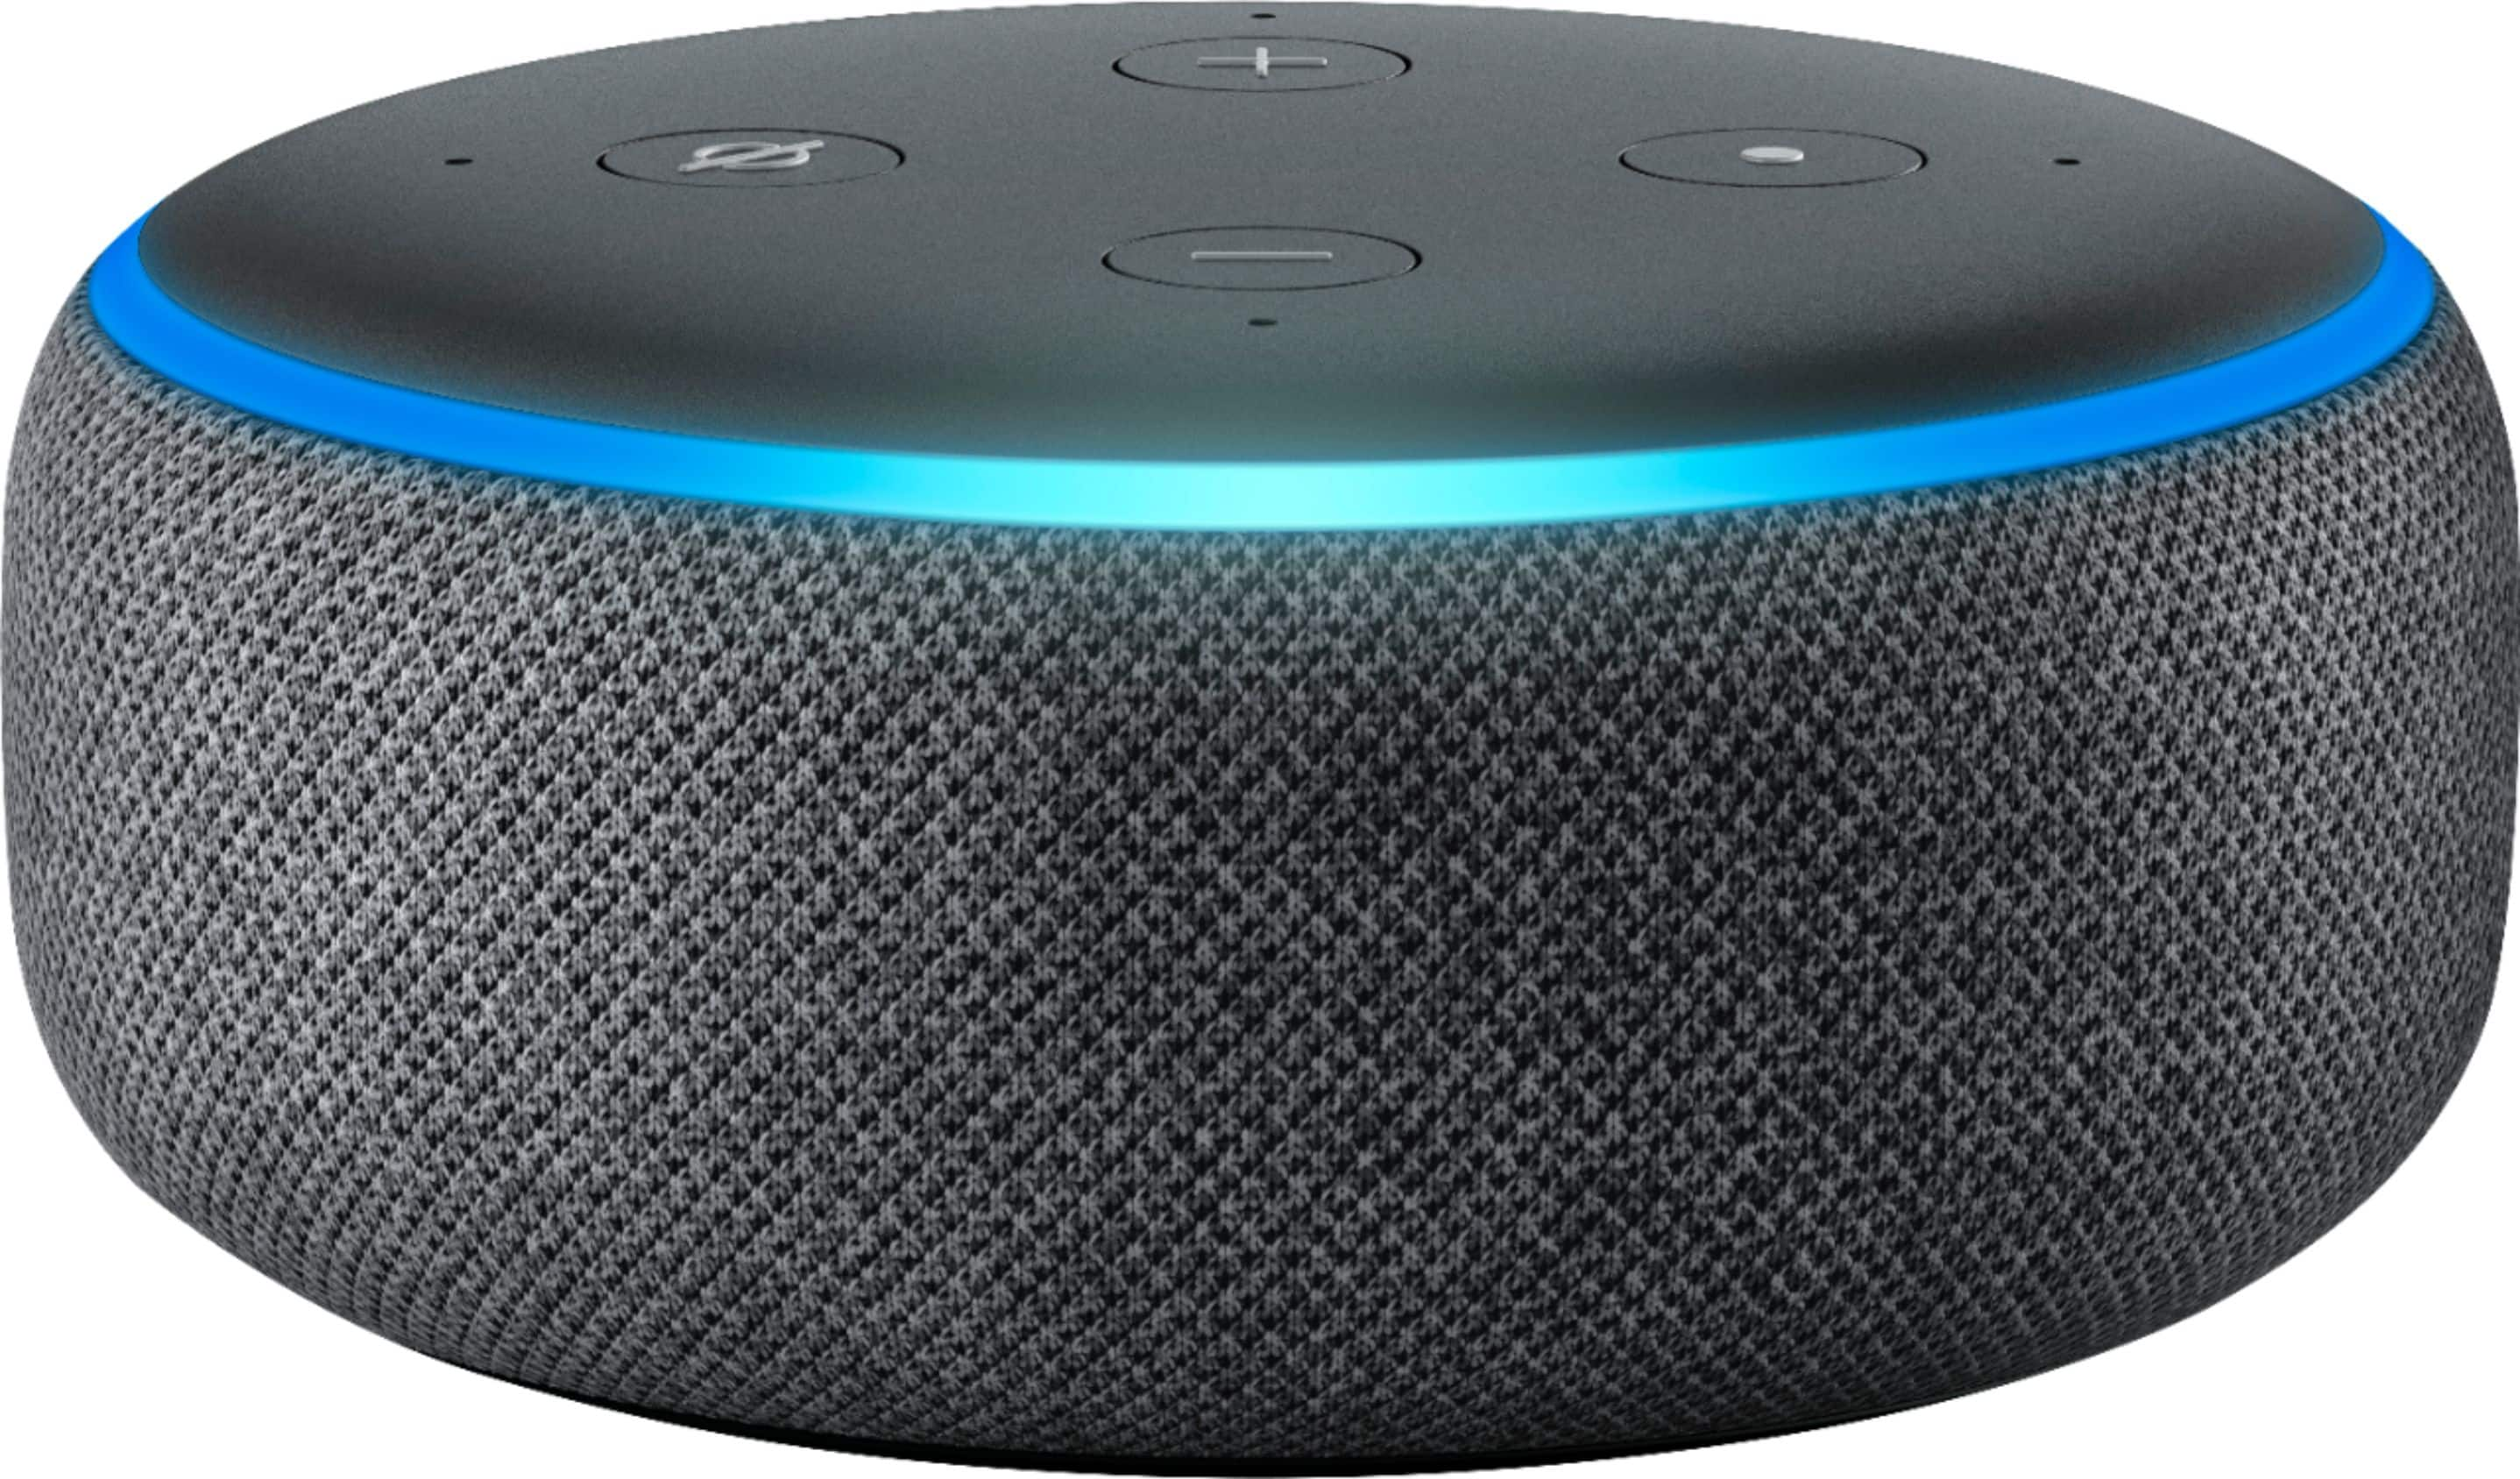 FREE 3rd Gen Amazon Echo Dot for Travelers Homeowners Insurance Customers